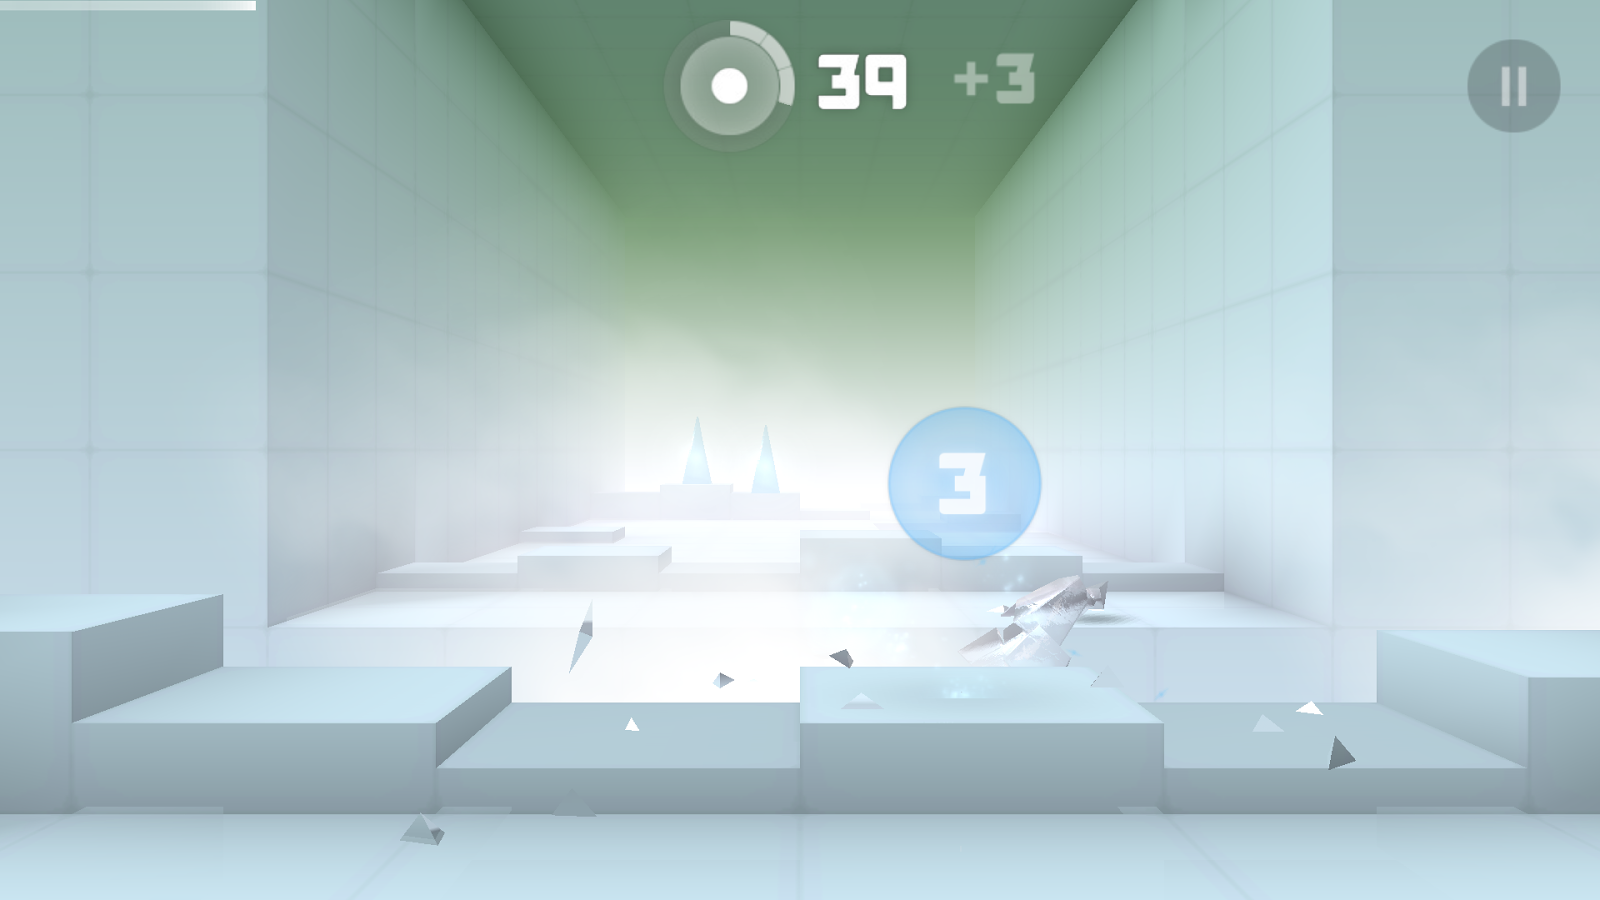 Glass breaking - Smash Hit 1.0.0 on Android Screen shot